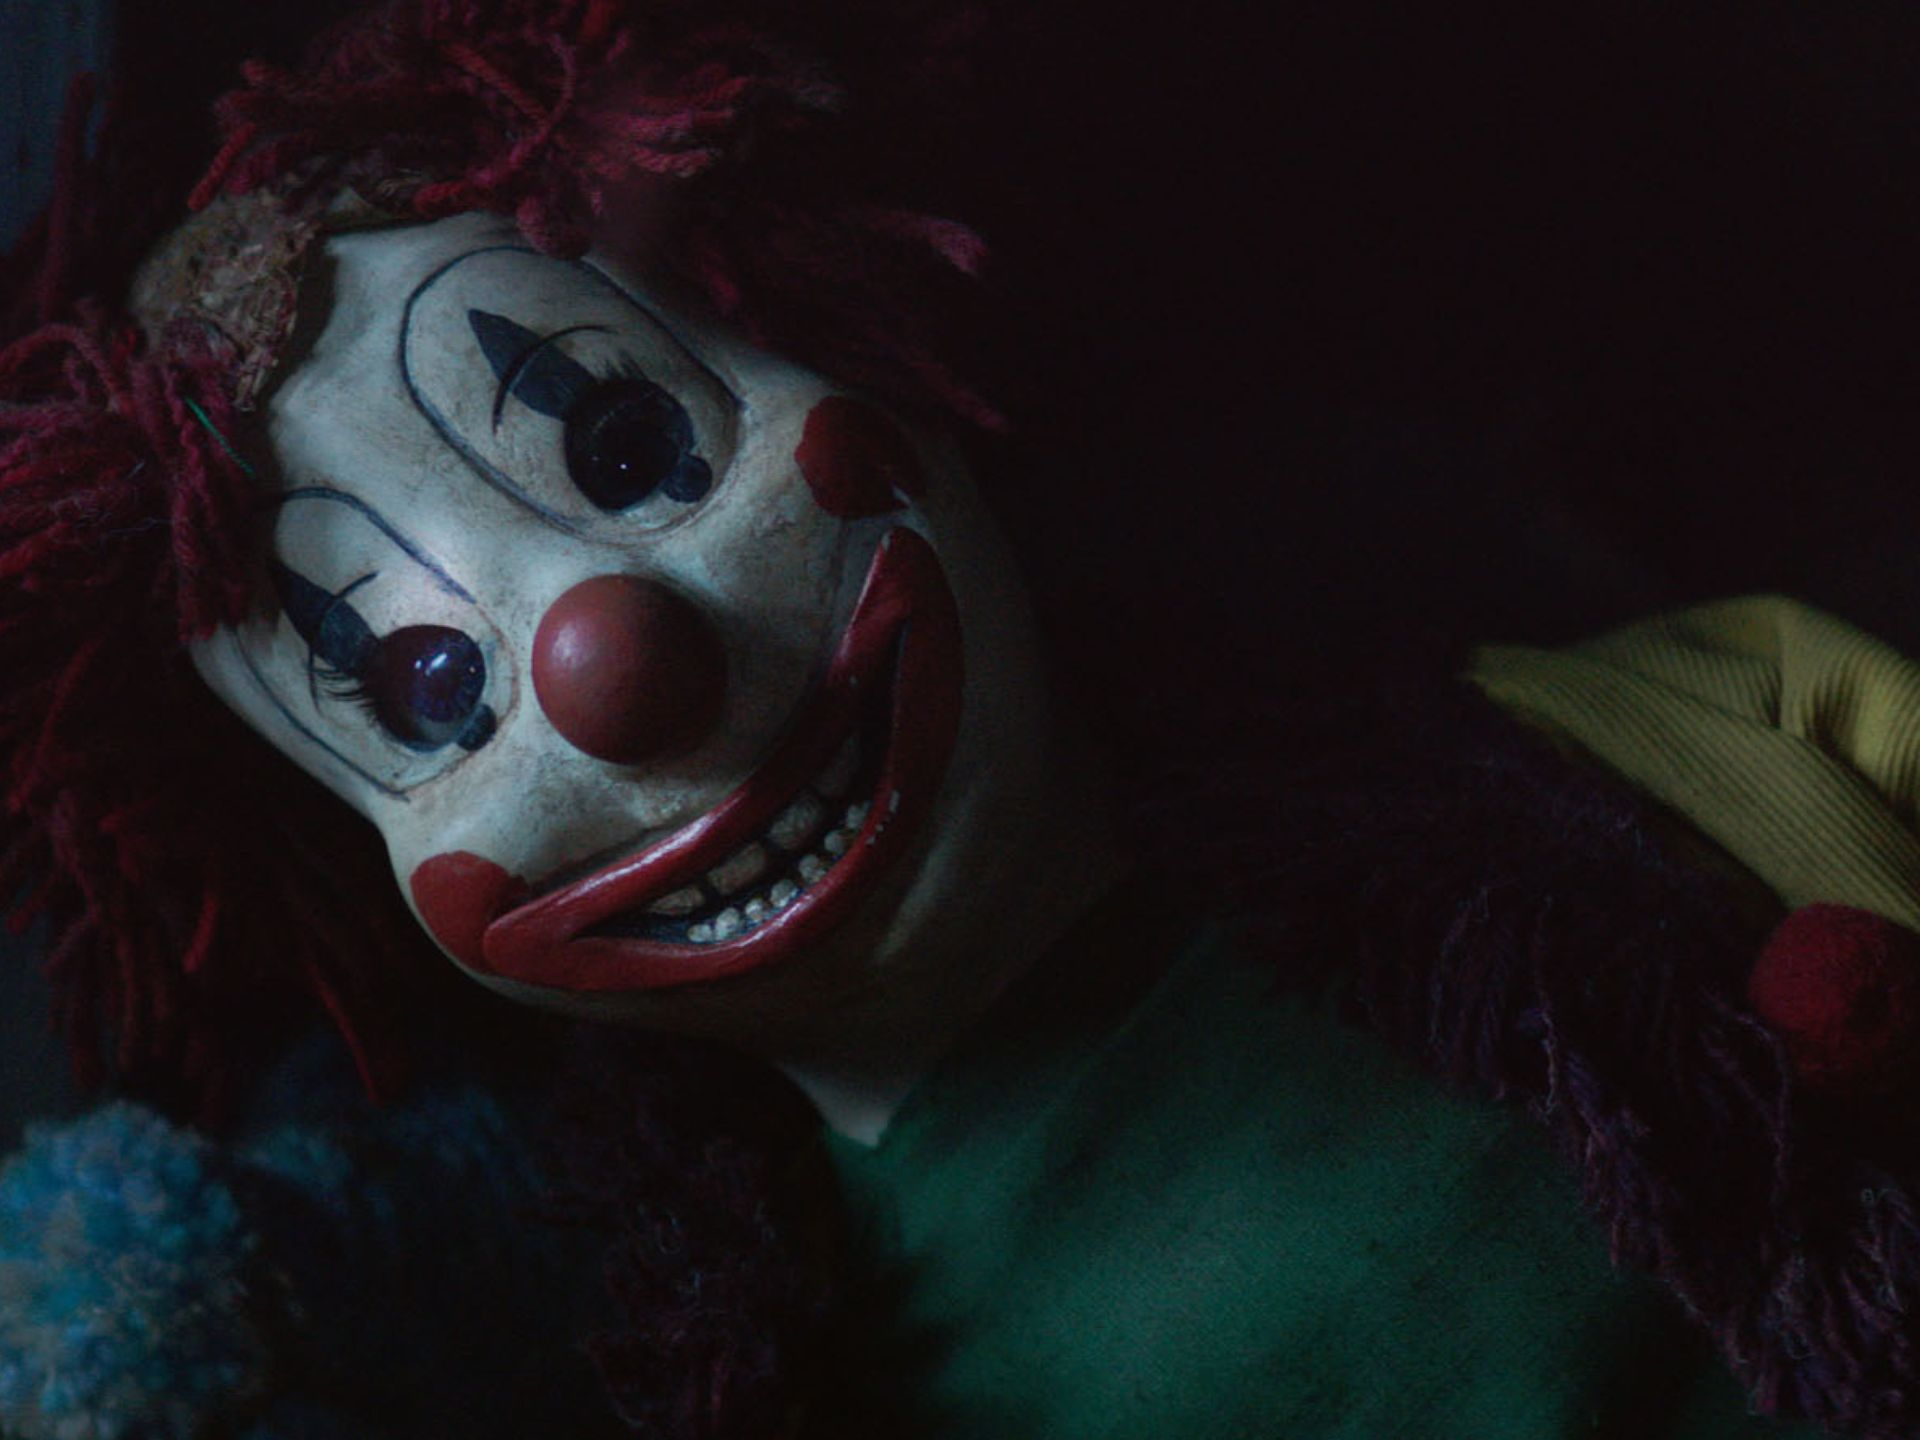 The 'Poltergeist' Clown Wants To Sing You A Song